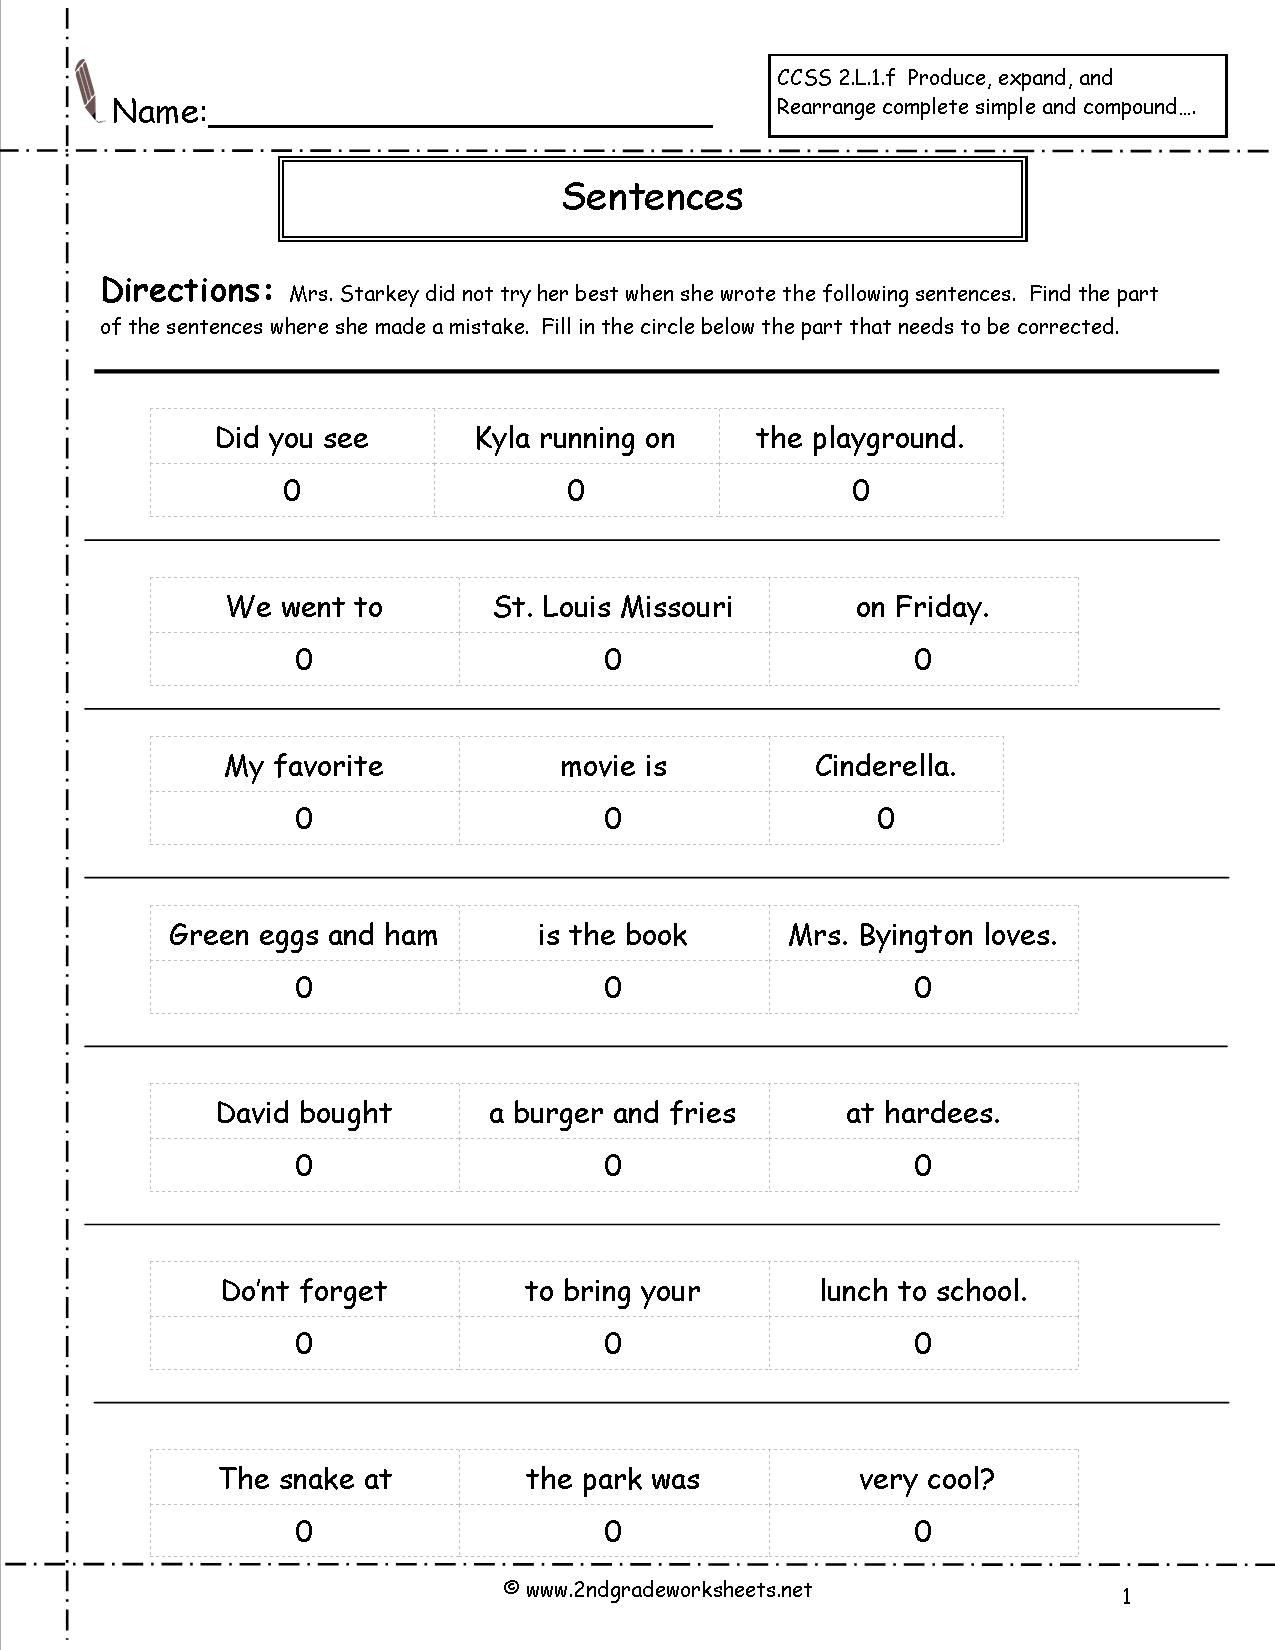 Topic Sentence Worksheets 4th Grade Correct the Sentence Worksheet